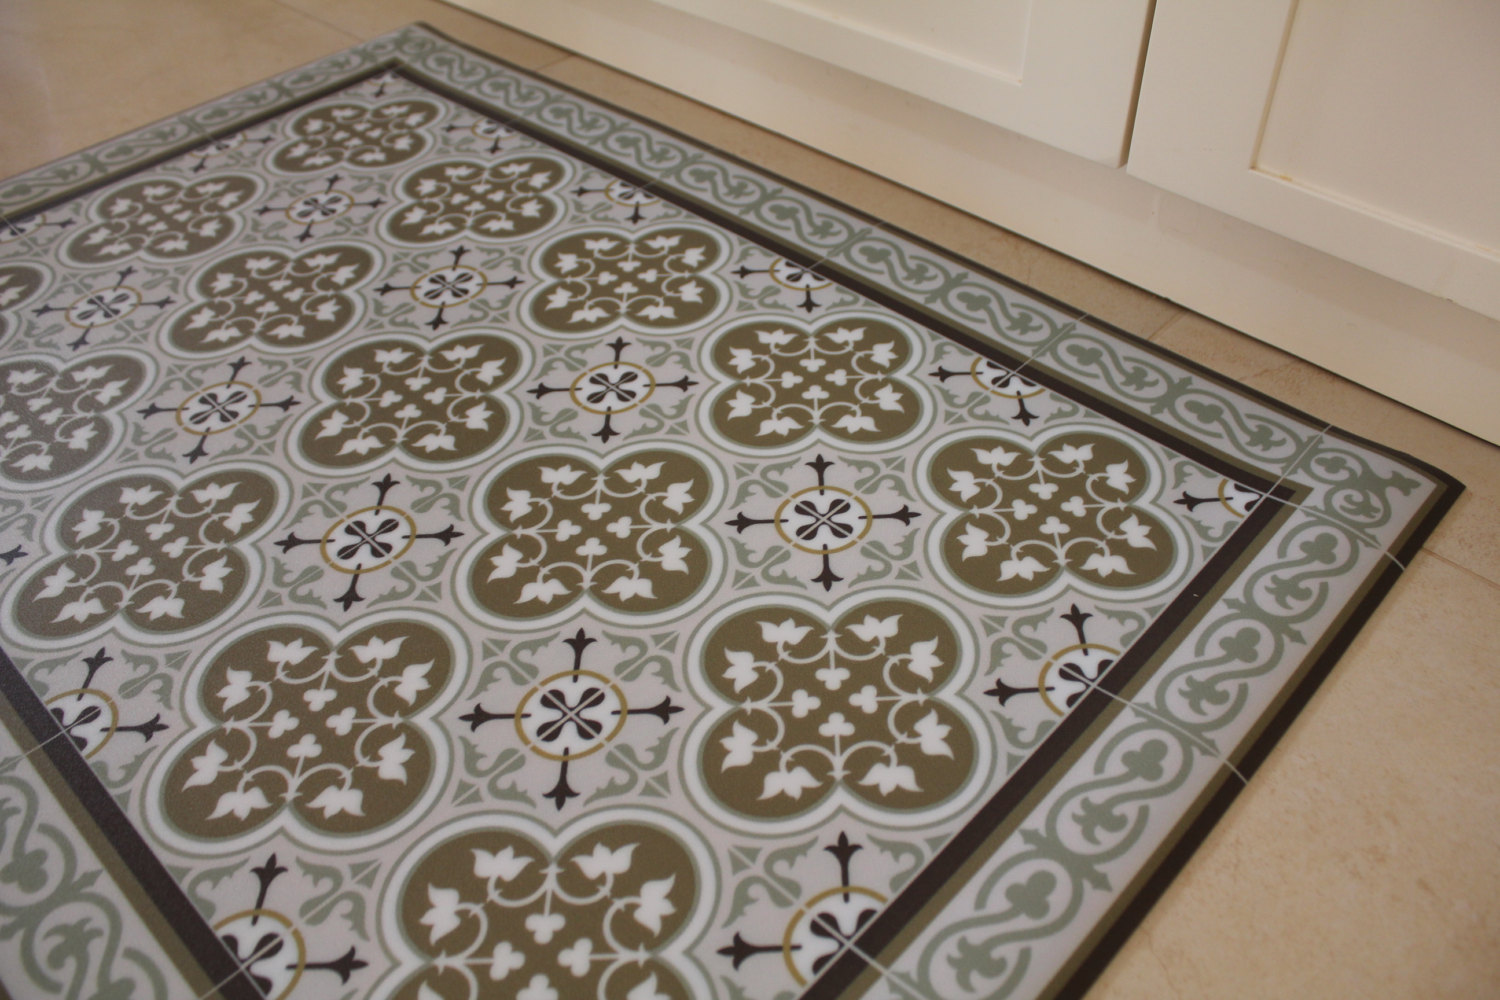 Linoleum Tiles In A Kitchen